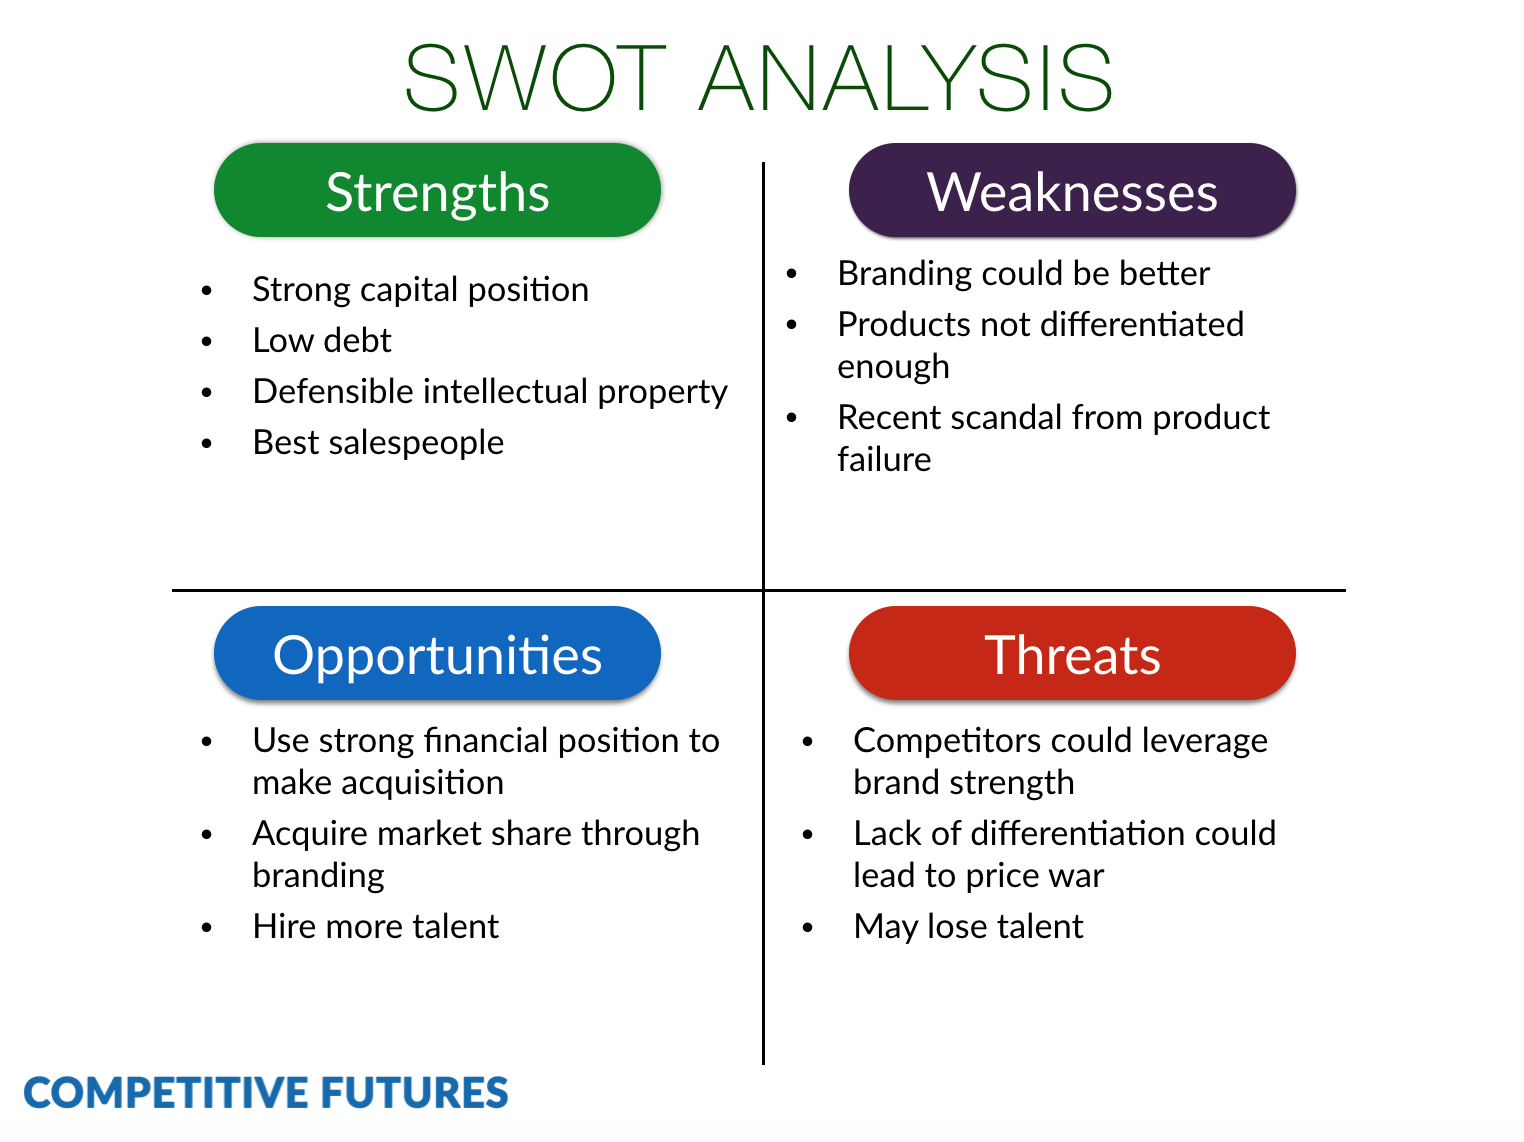 swot analysis in chowking Problem statement a service quality issues jollibee food corporation from iabf hr mgt at far eastern university swot analysis chowking.